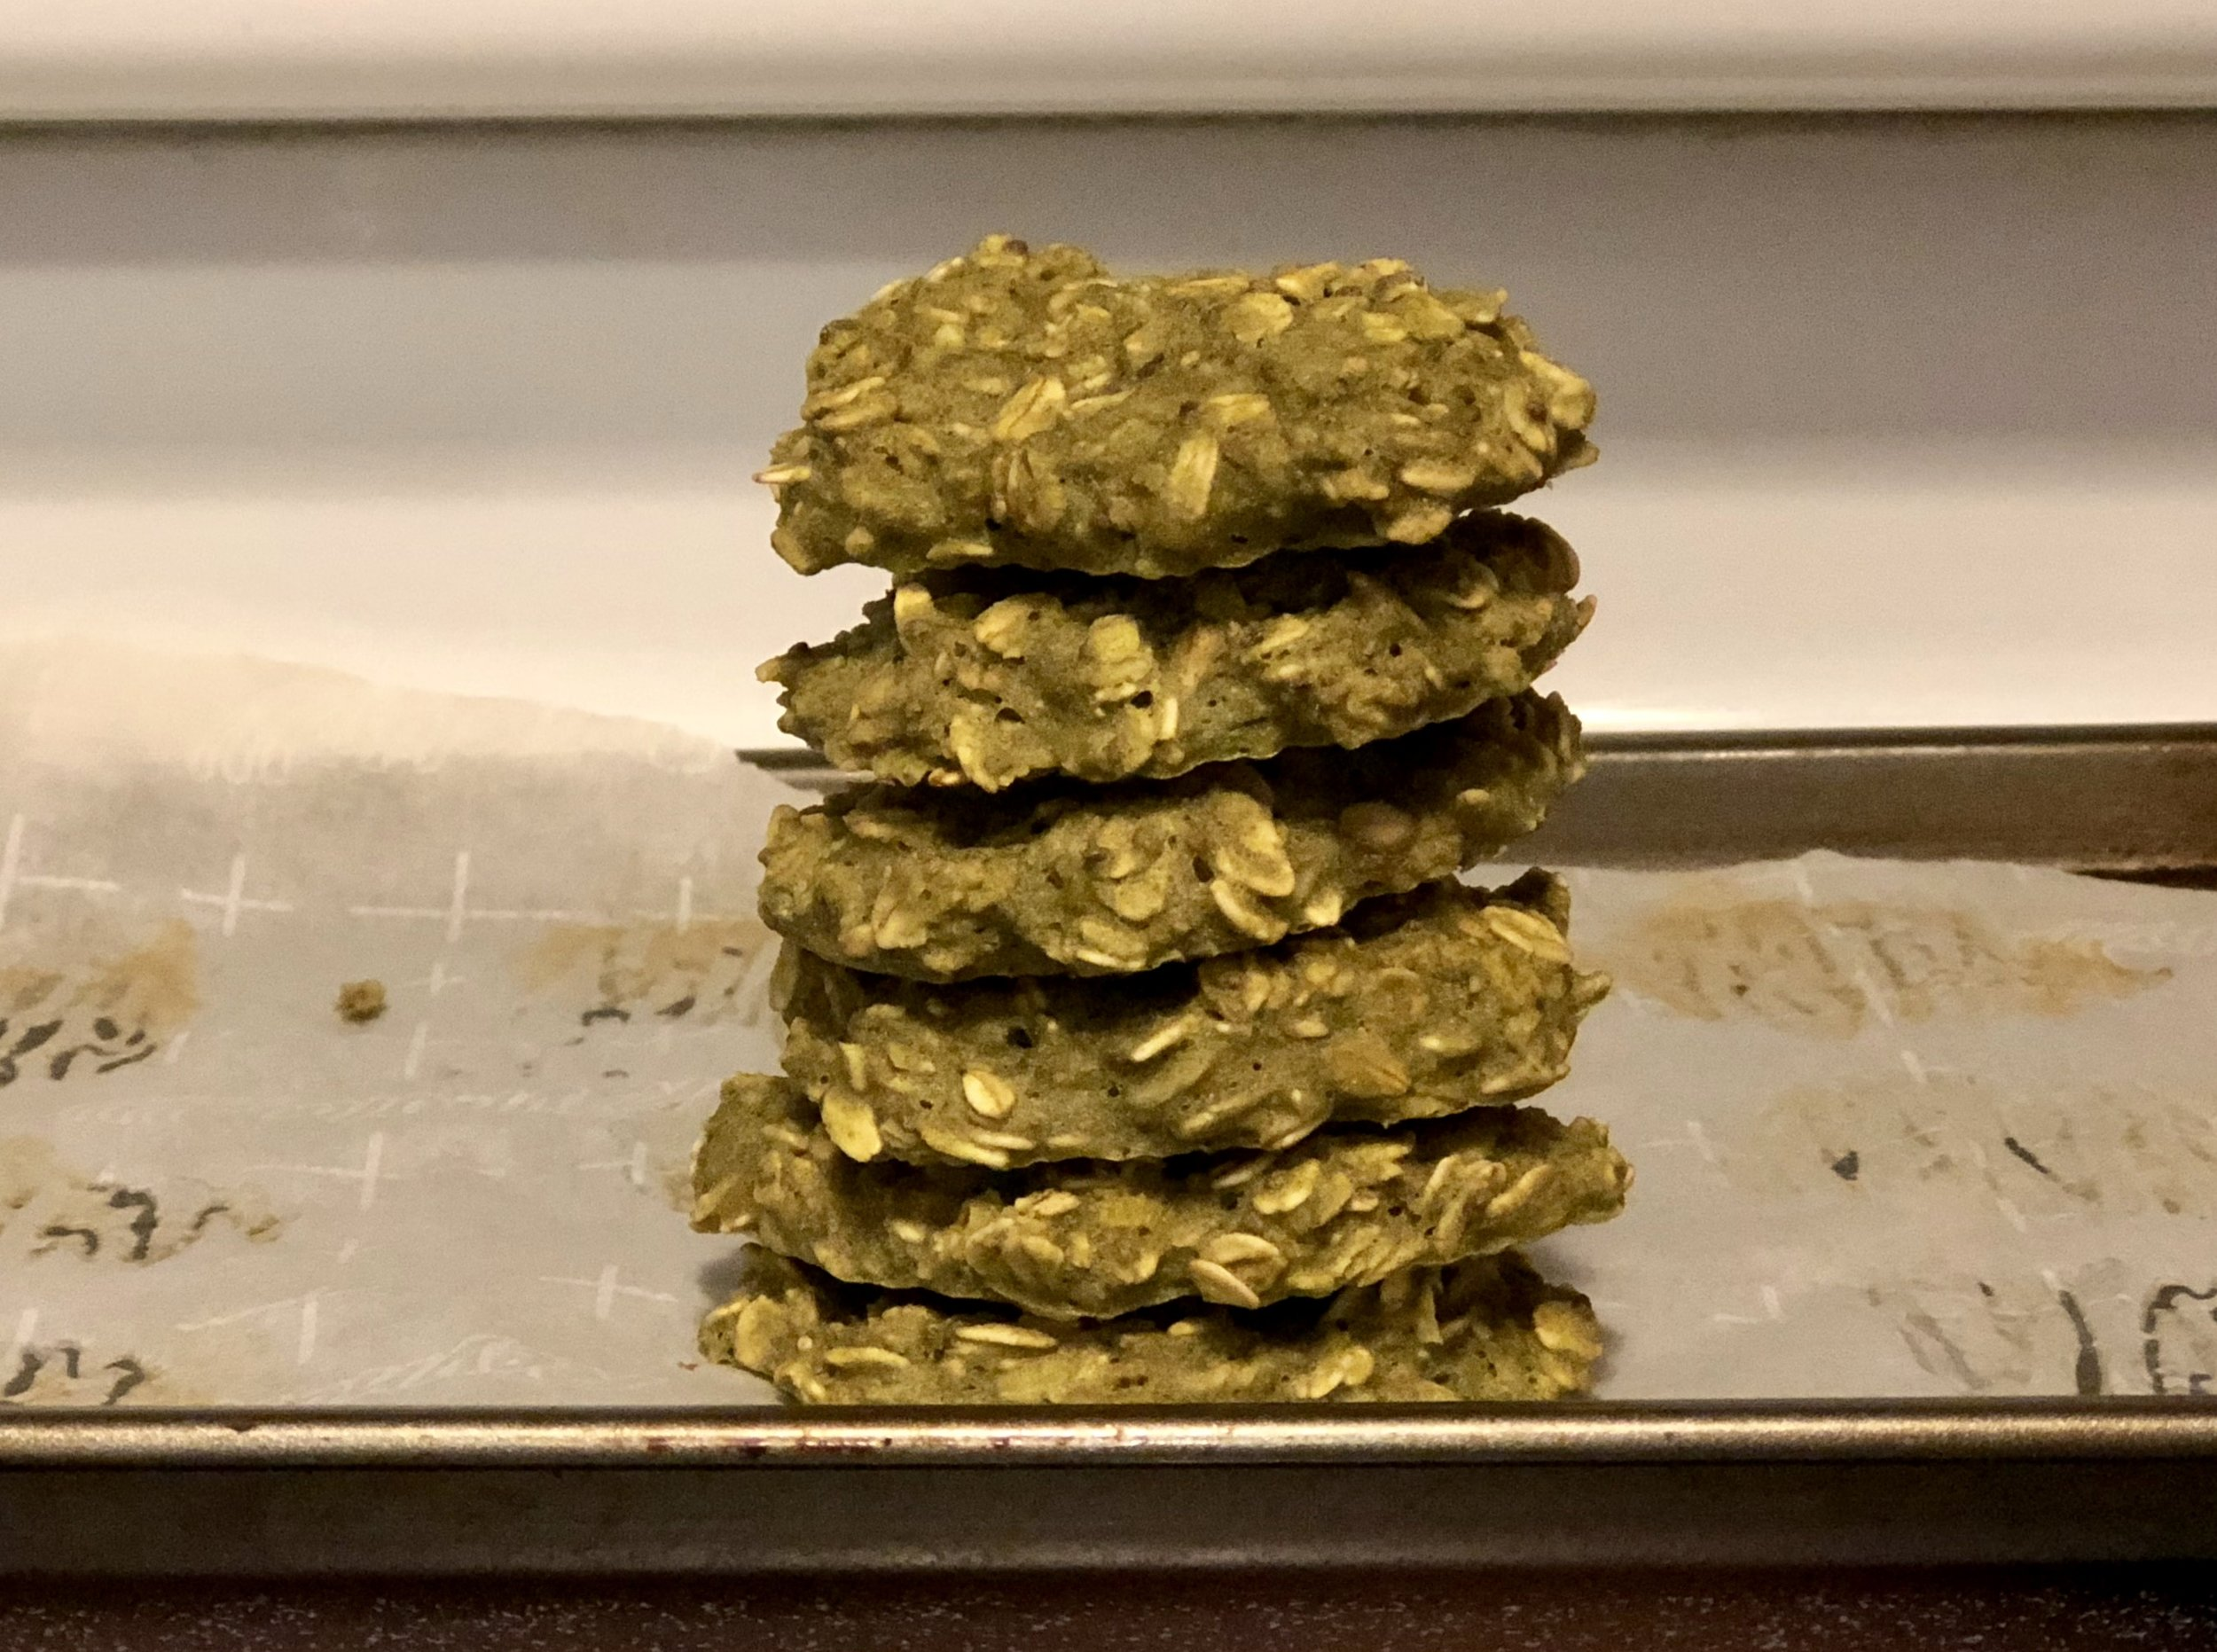 Green juice turned into cookies. Easy and a nutritious afternoon snack!